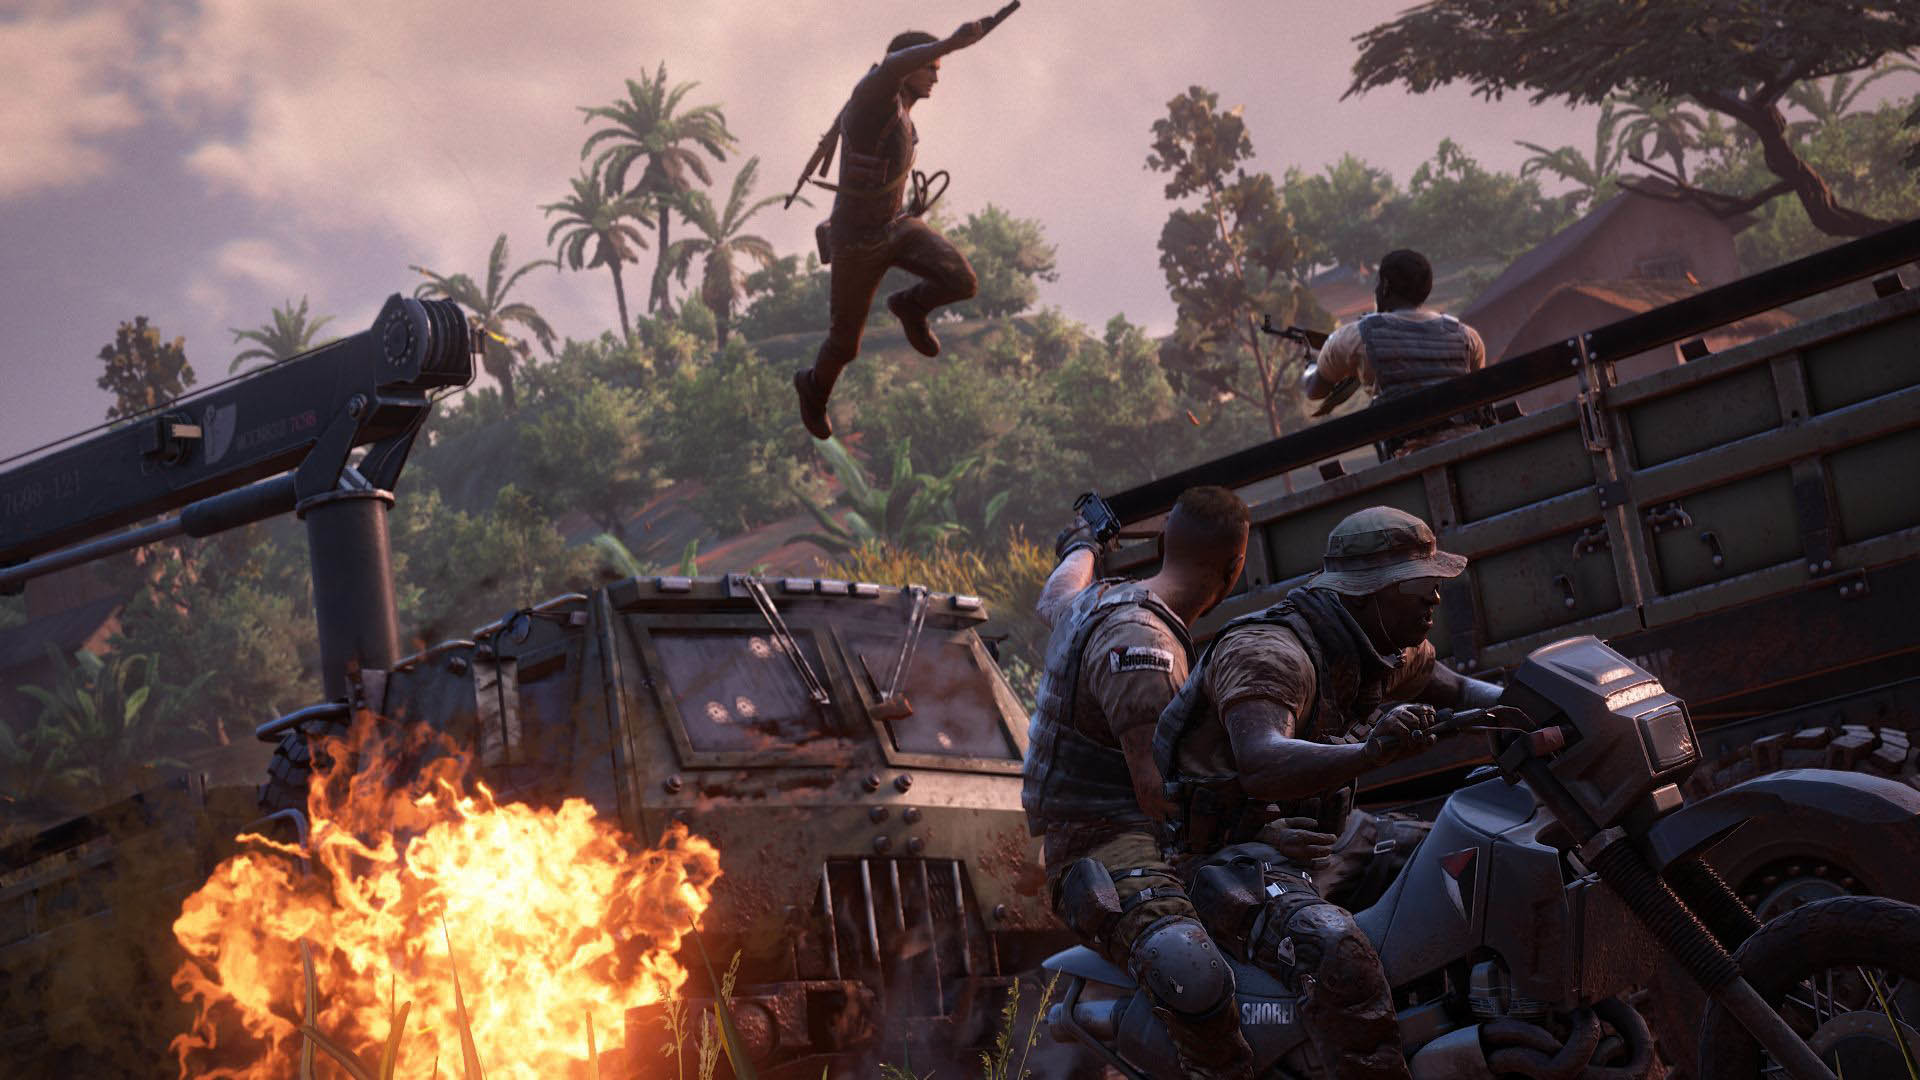 Uncharted 4 Explosive Action Scene on the Road wallpaper